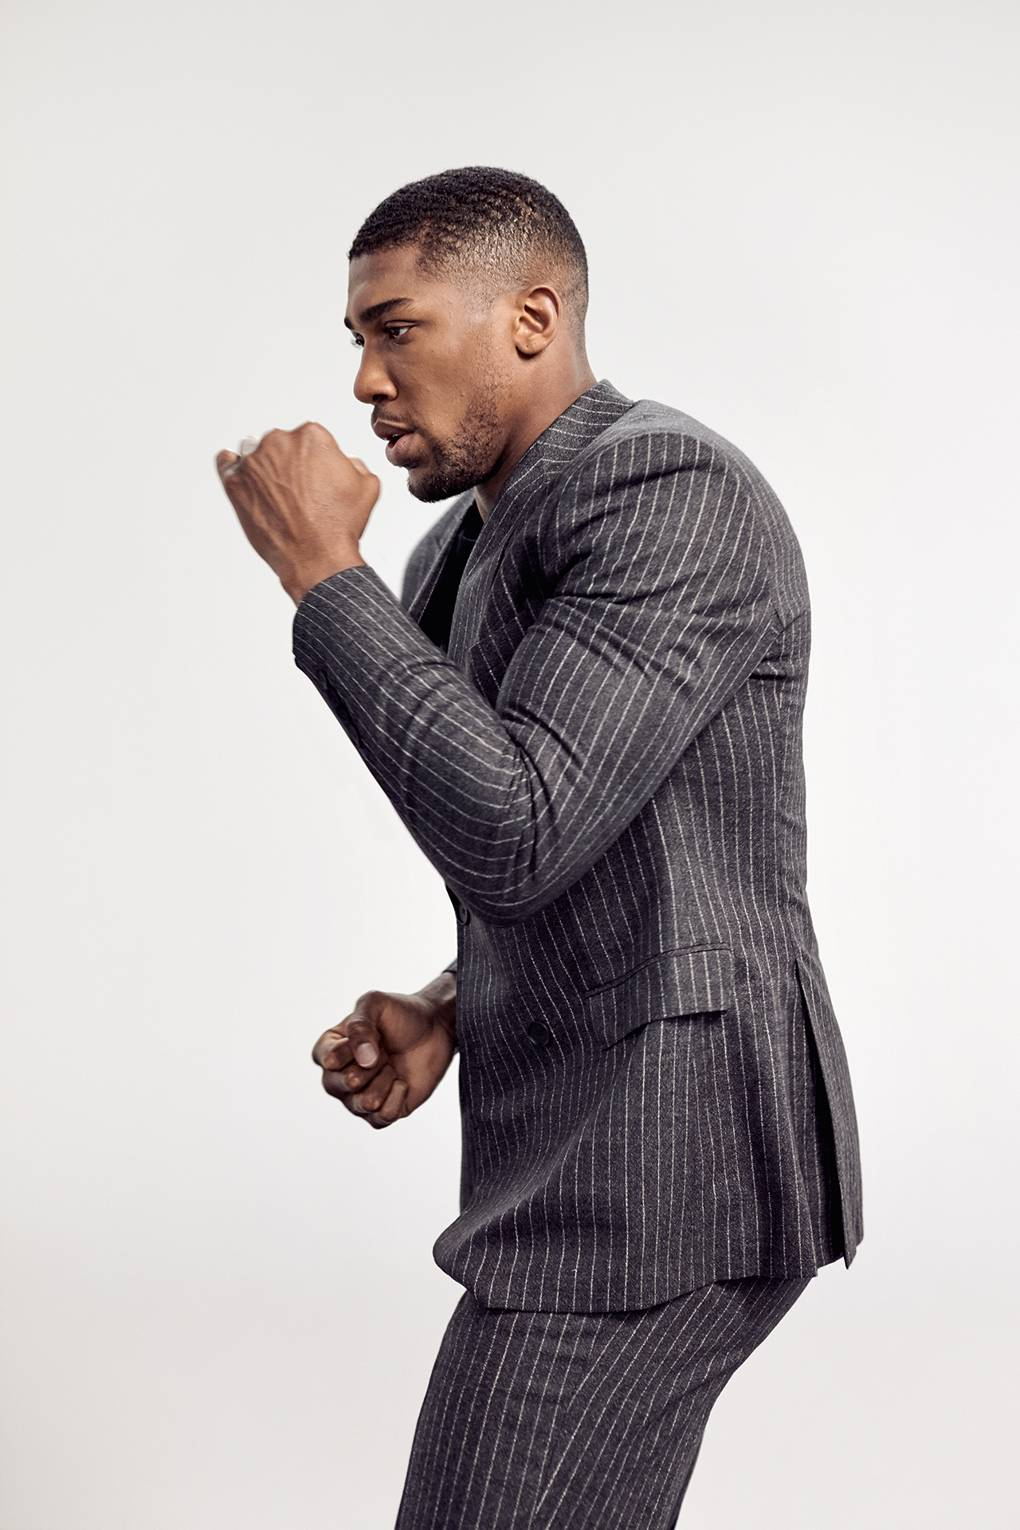 9e0095f50 Exclusive: Anthony Joshua is the new face of Hugo Boss' Stretch Tailoring  line | British GQ